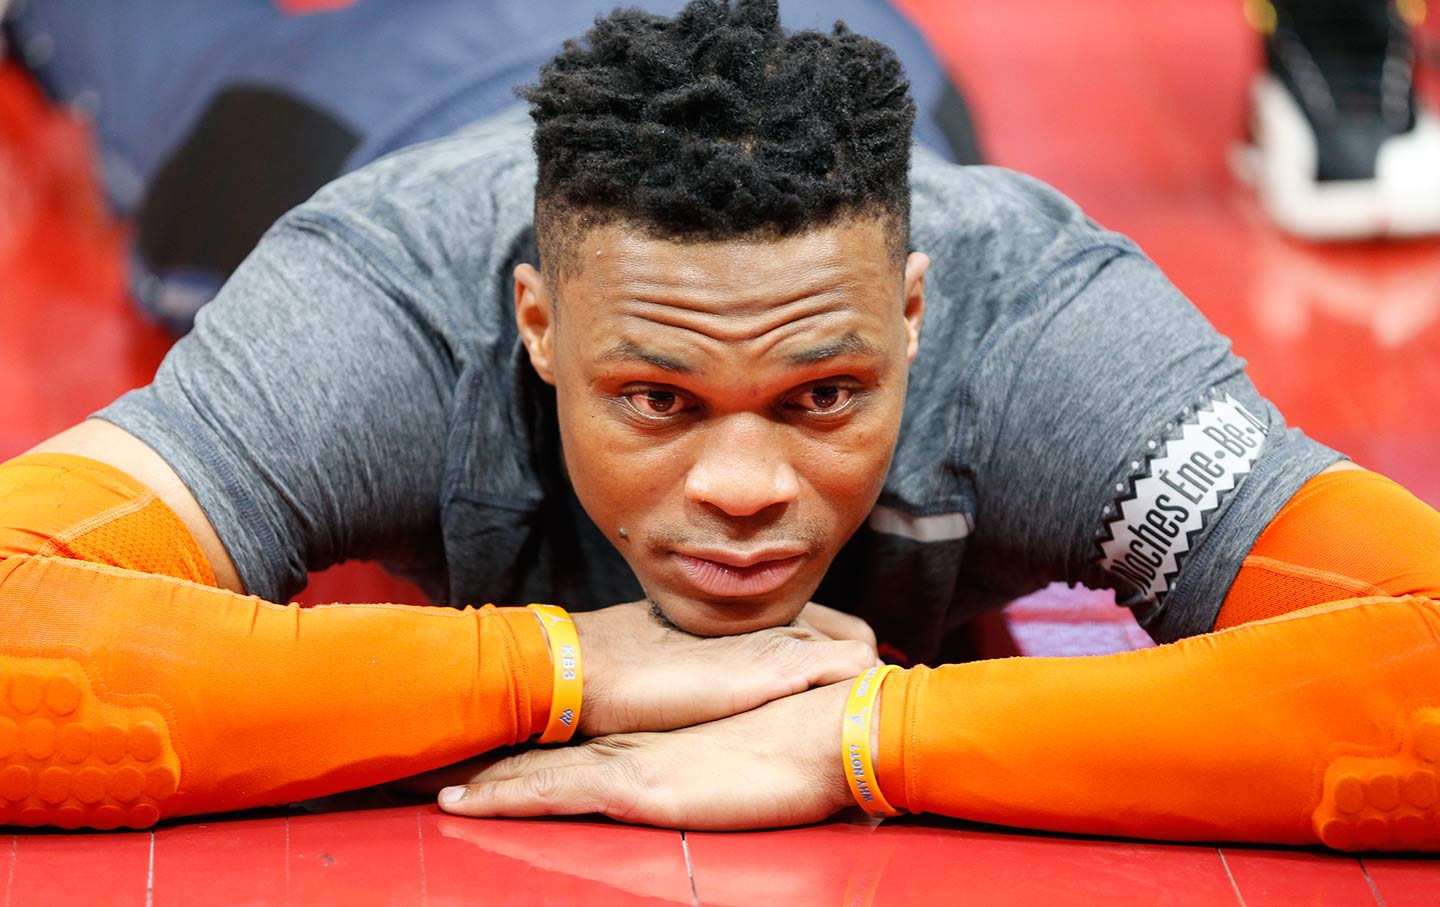 Russell Westbrook versus Jazz fan ignites ban, lawsuit and fine